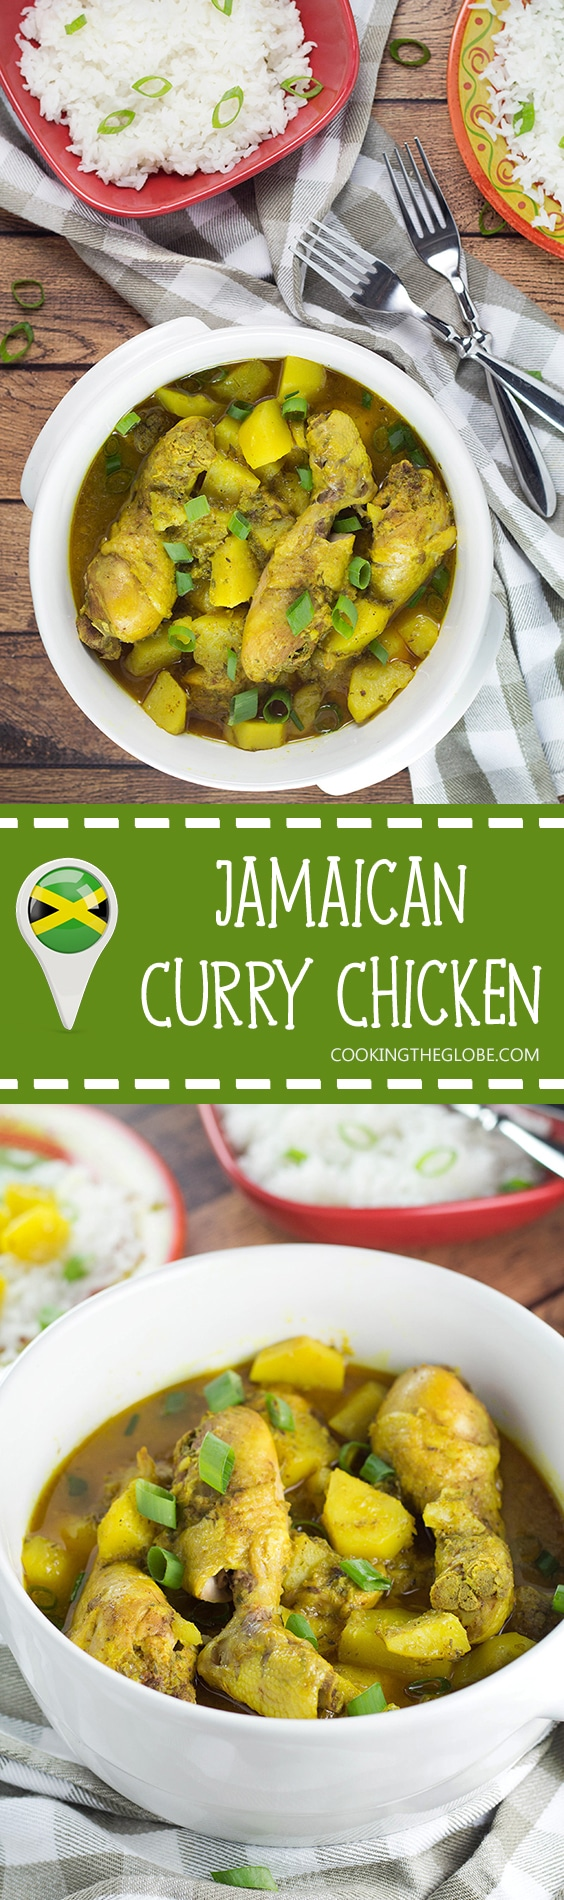 If you love Caribbean cuisine, this Jamaican Curry Chicken will make your taste buds tingle. It's spicy, it's comforting, it's everything you want a dish to be. Yum! | cookingtheglobe.com